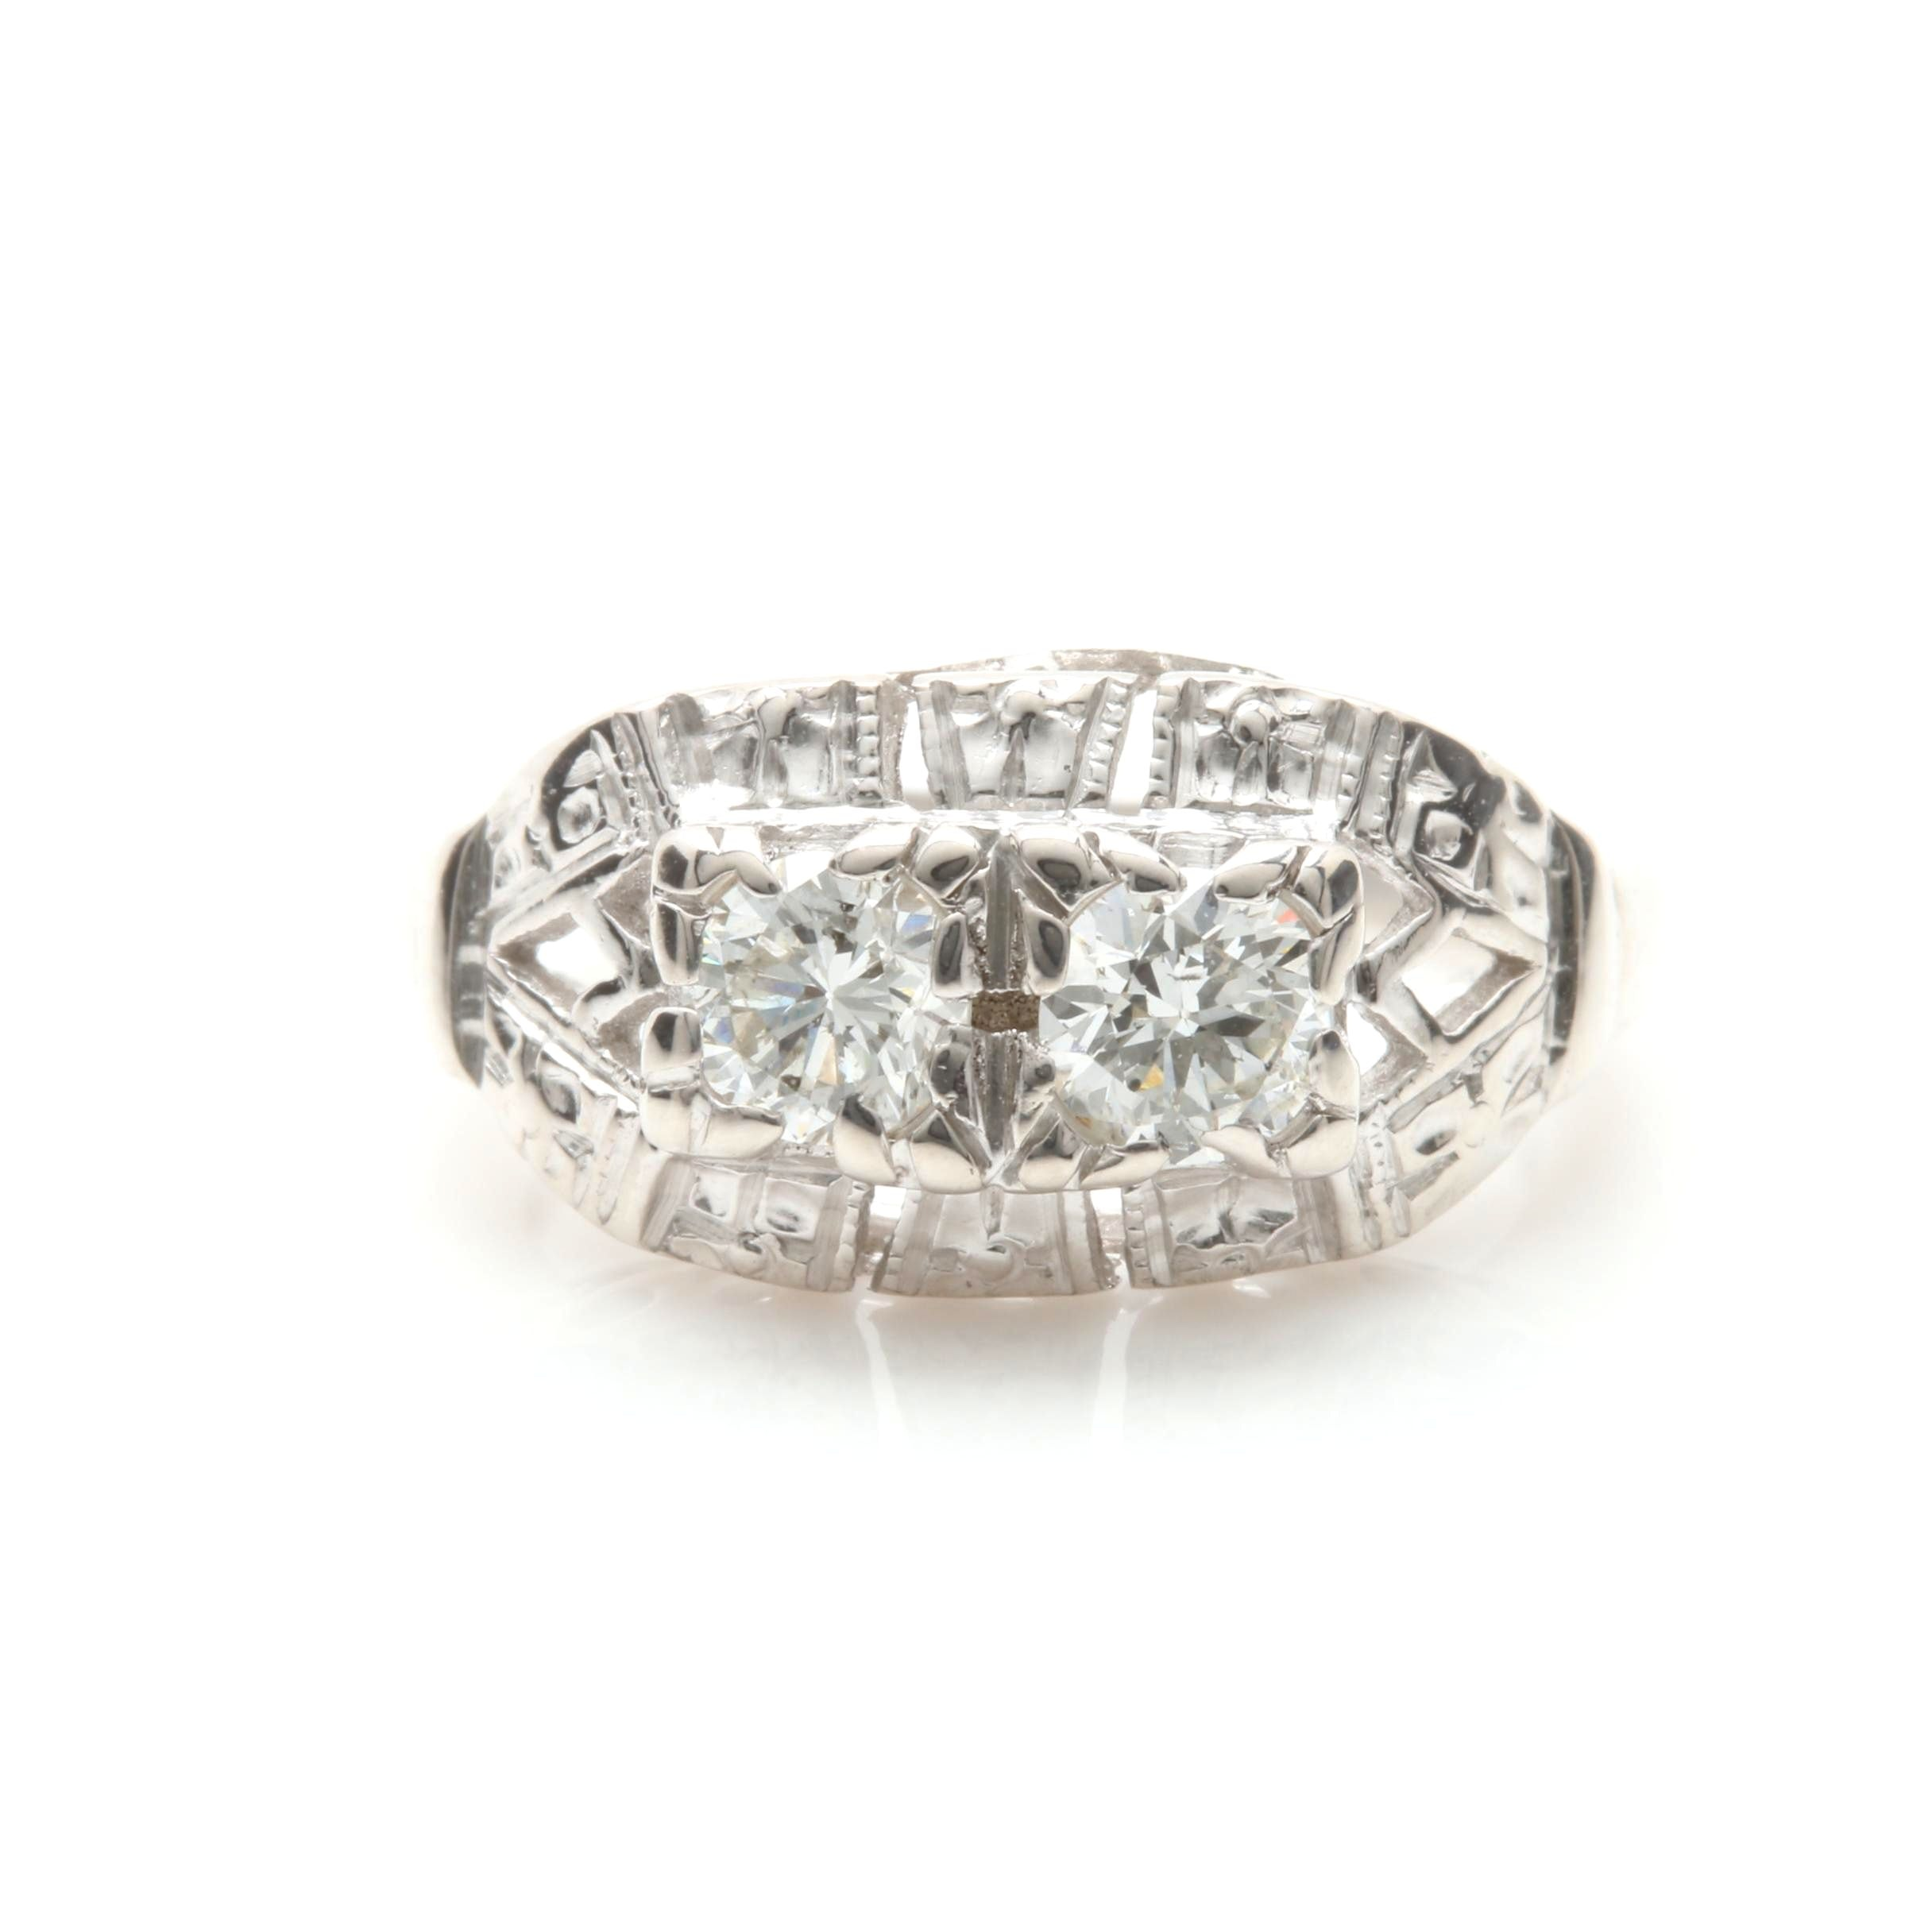 Circa 1950s 14K White Gold Diamond Ring